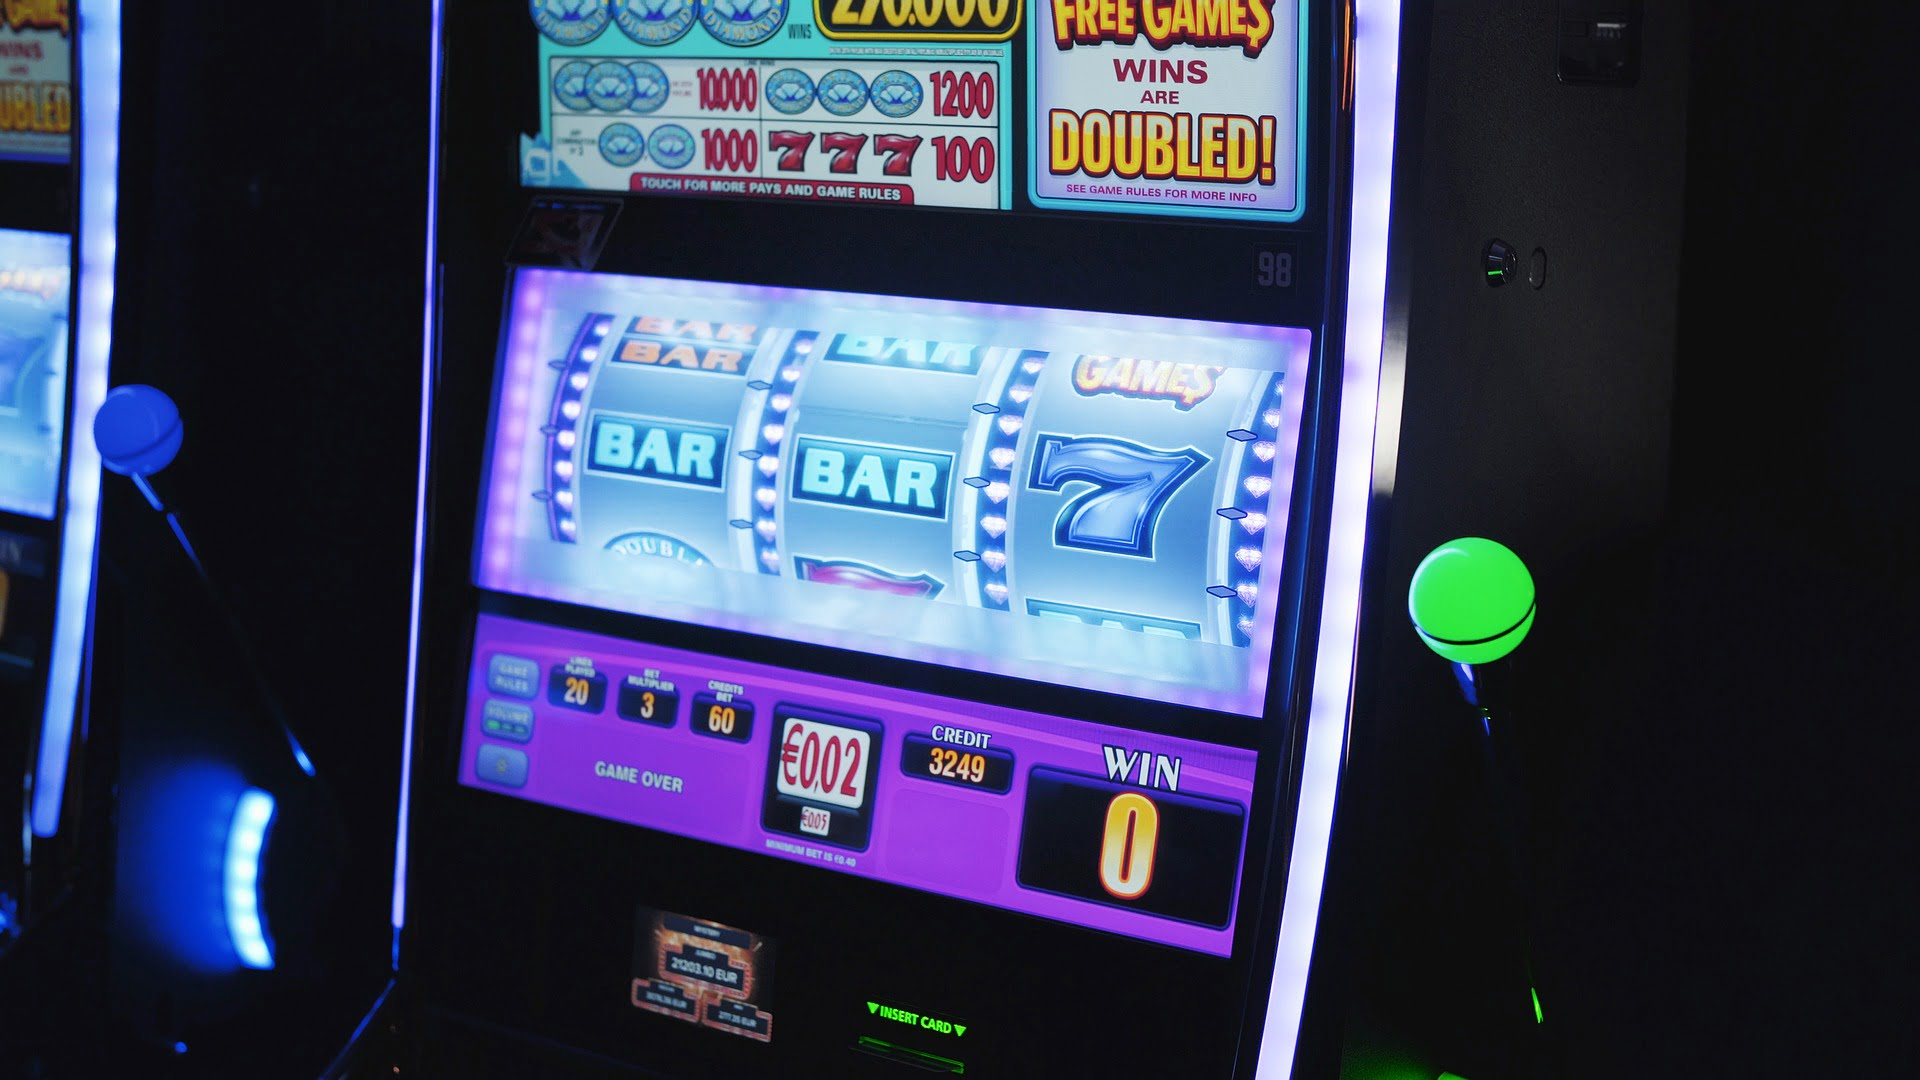 Are Online Casinos Equally Delivering On Their Welcome Bonus